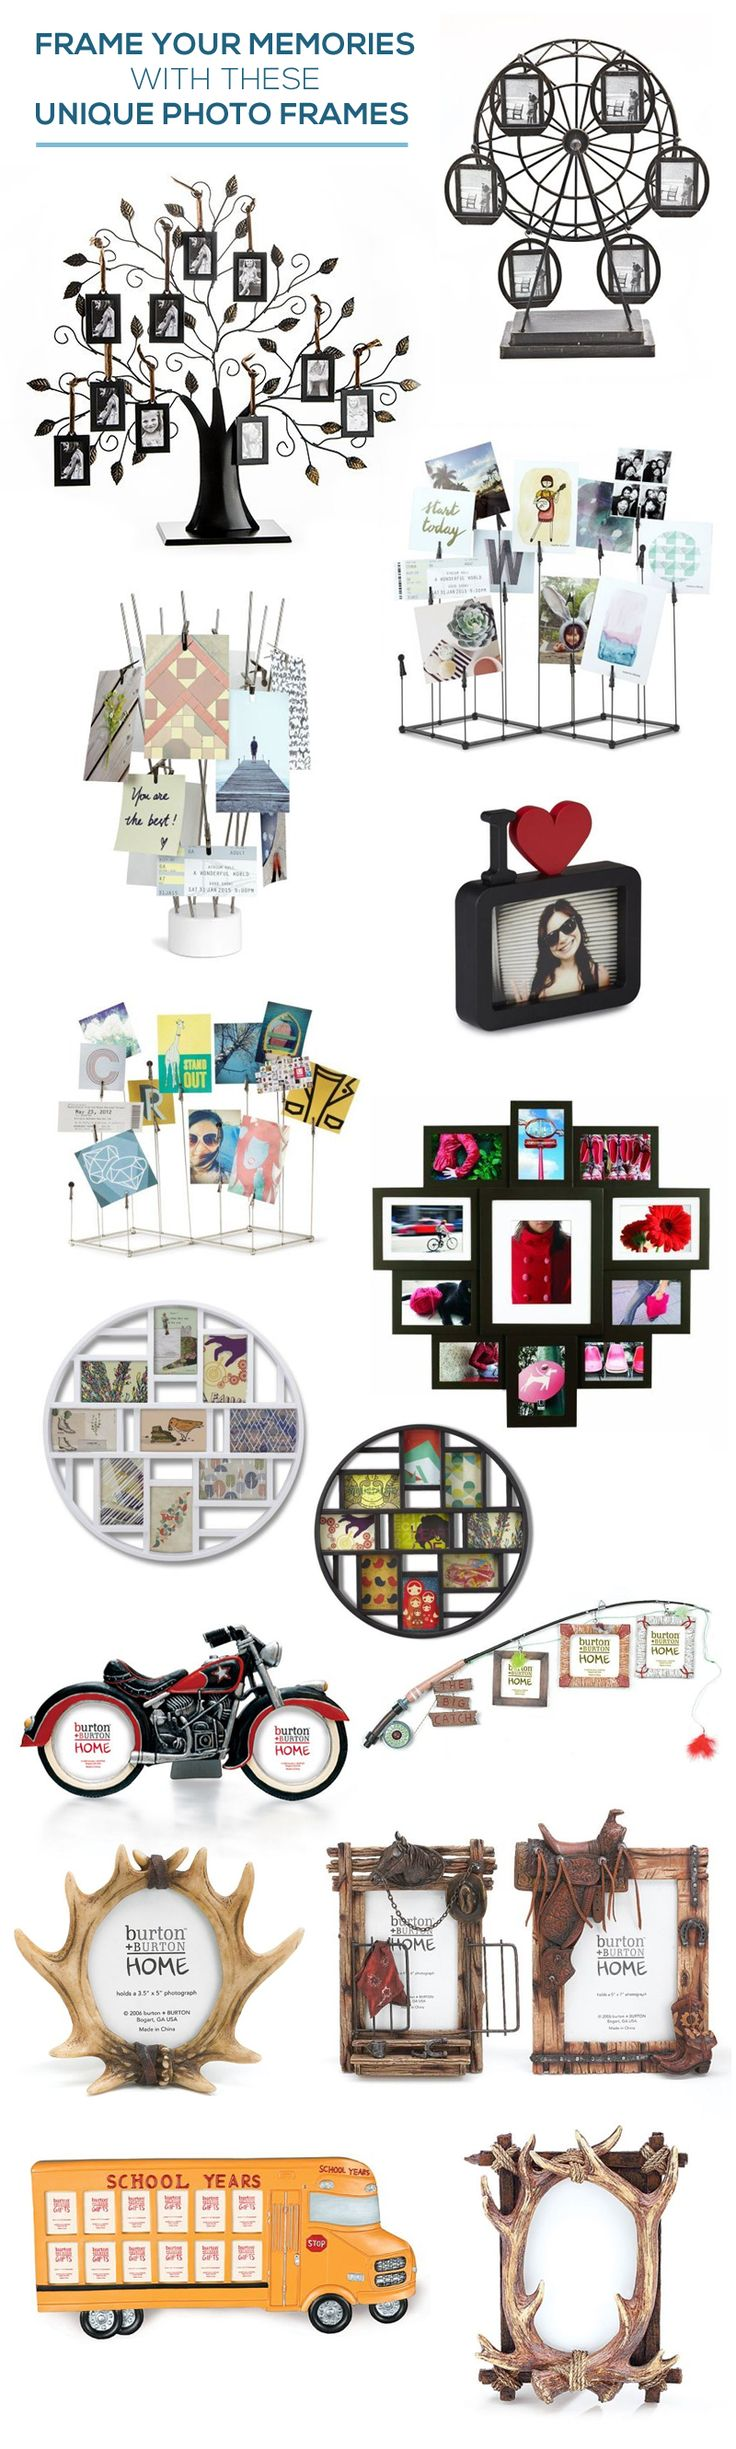 Frame Your Memories with These Unique Photo Frames